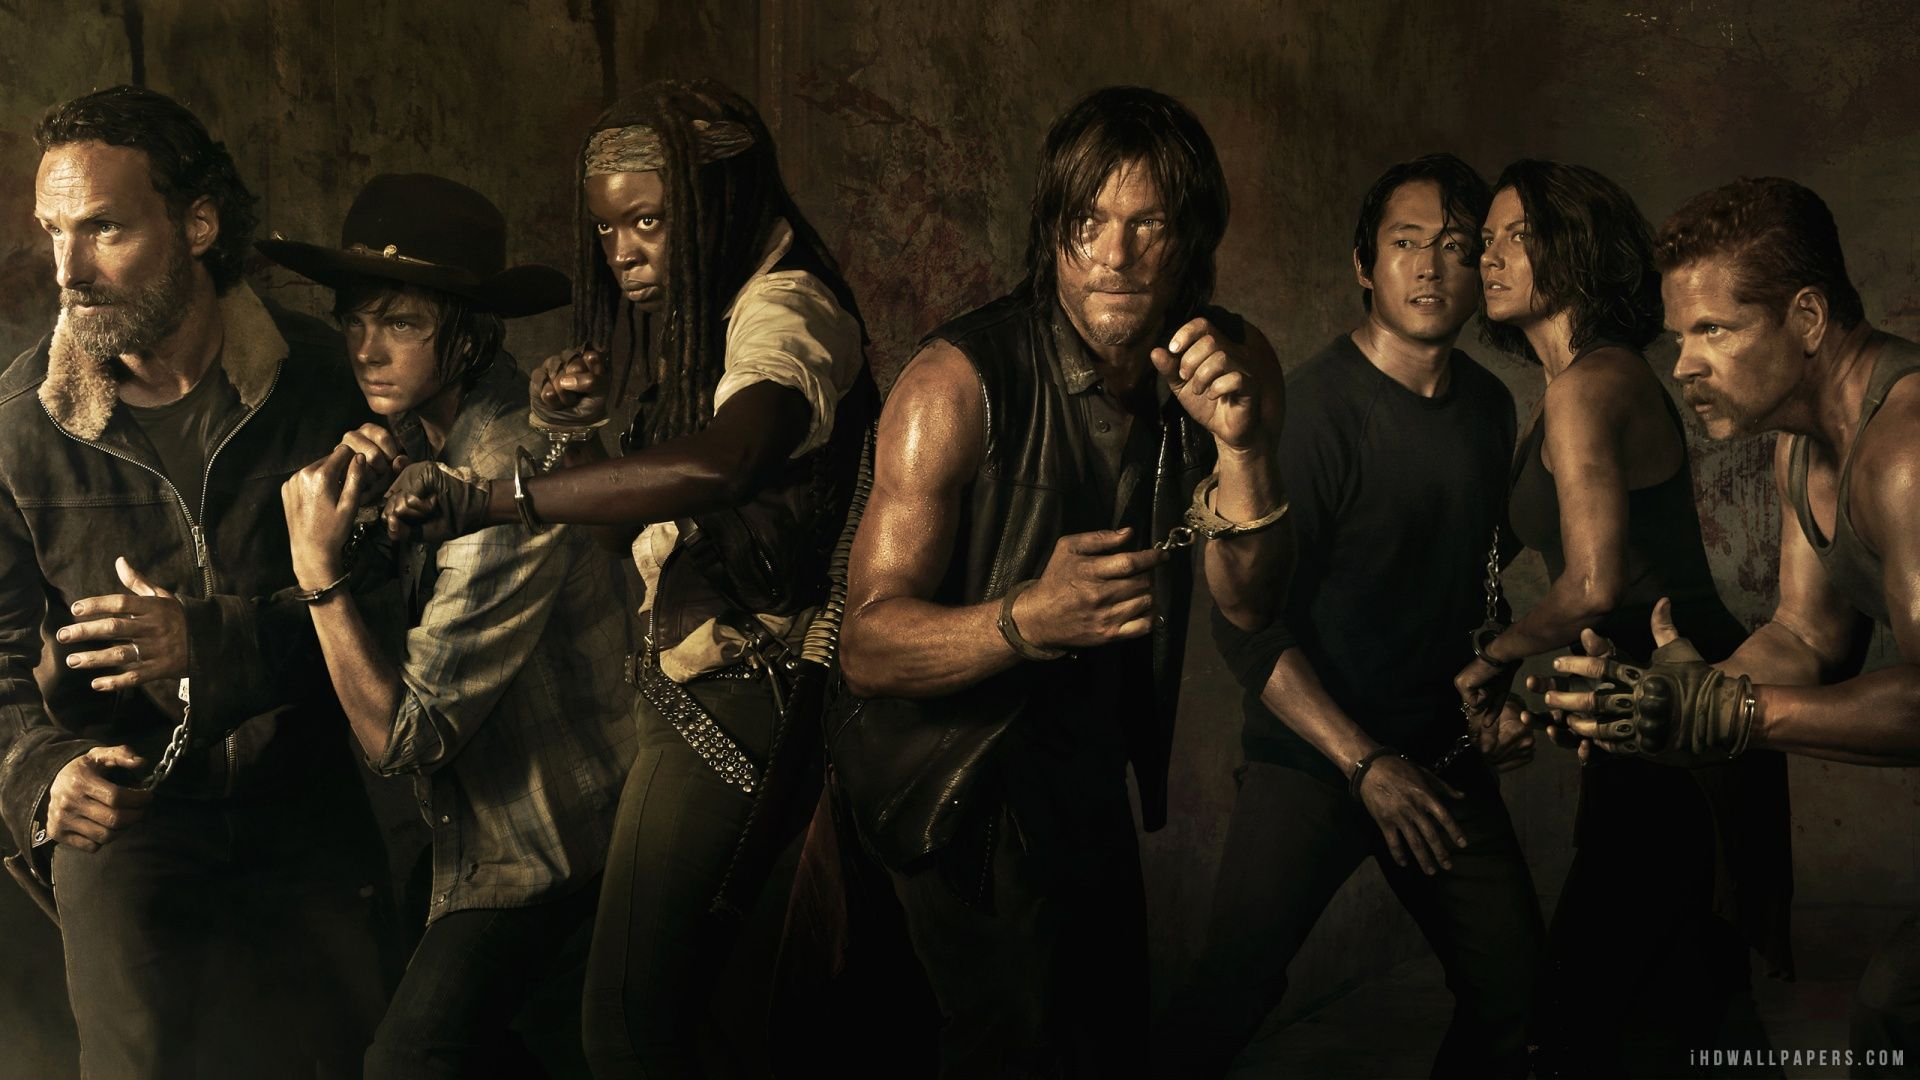 the walking dead wallpapers » fullhdwpp full hd wallpapers 2560×1440